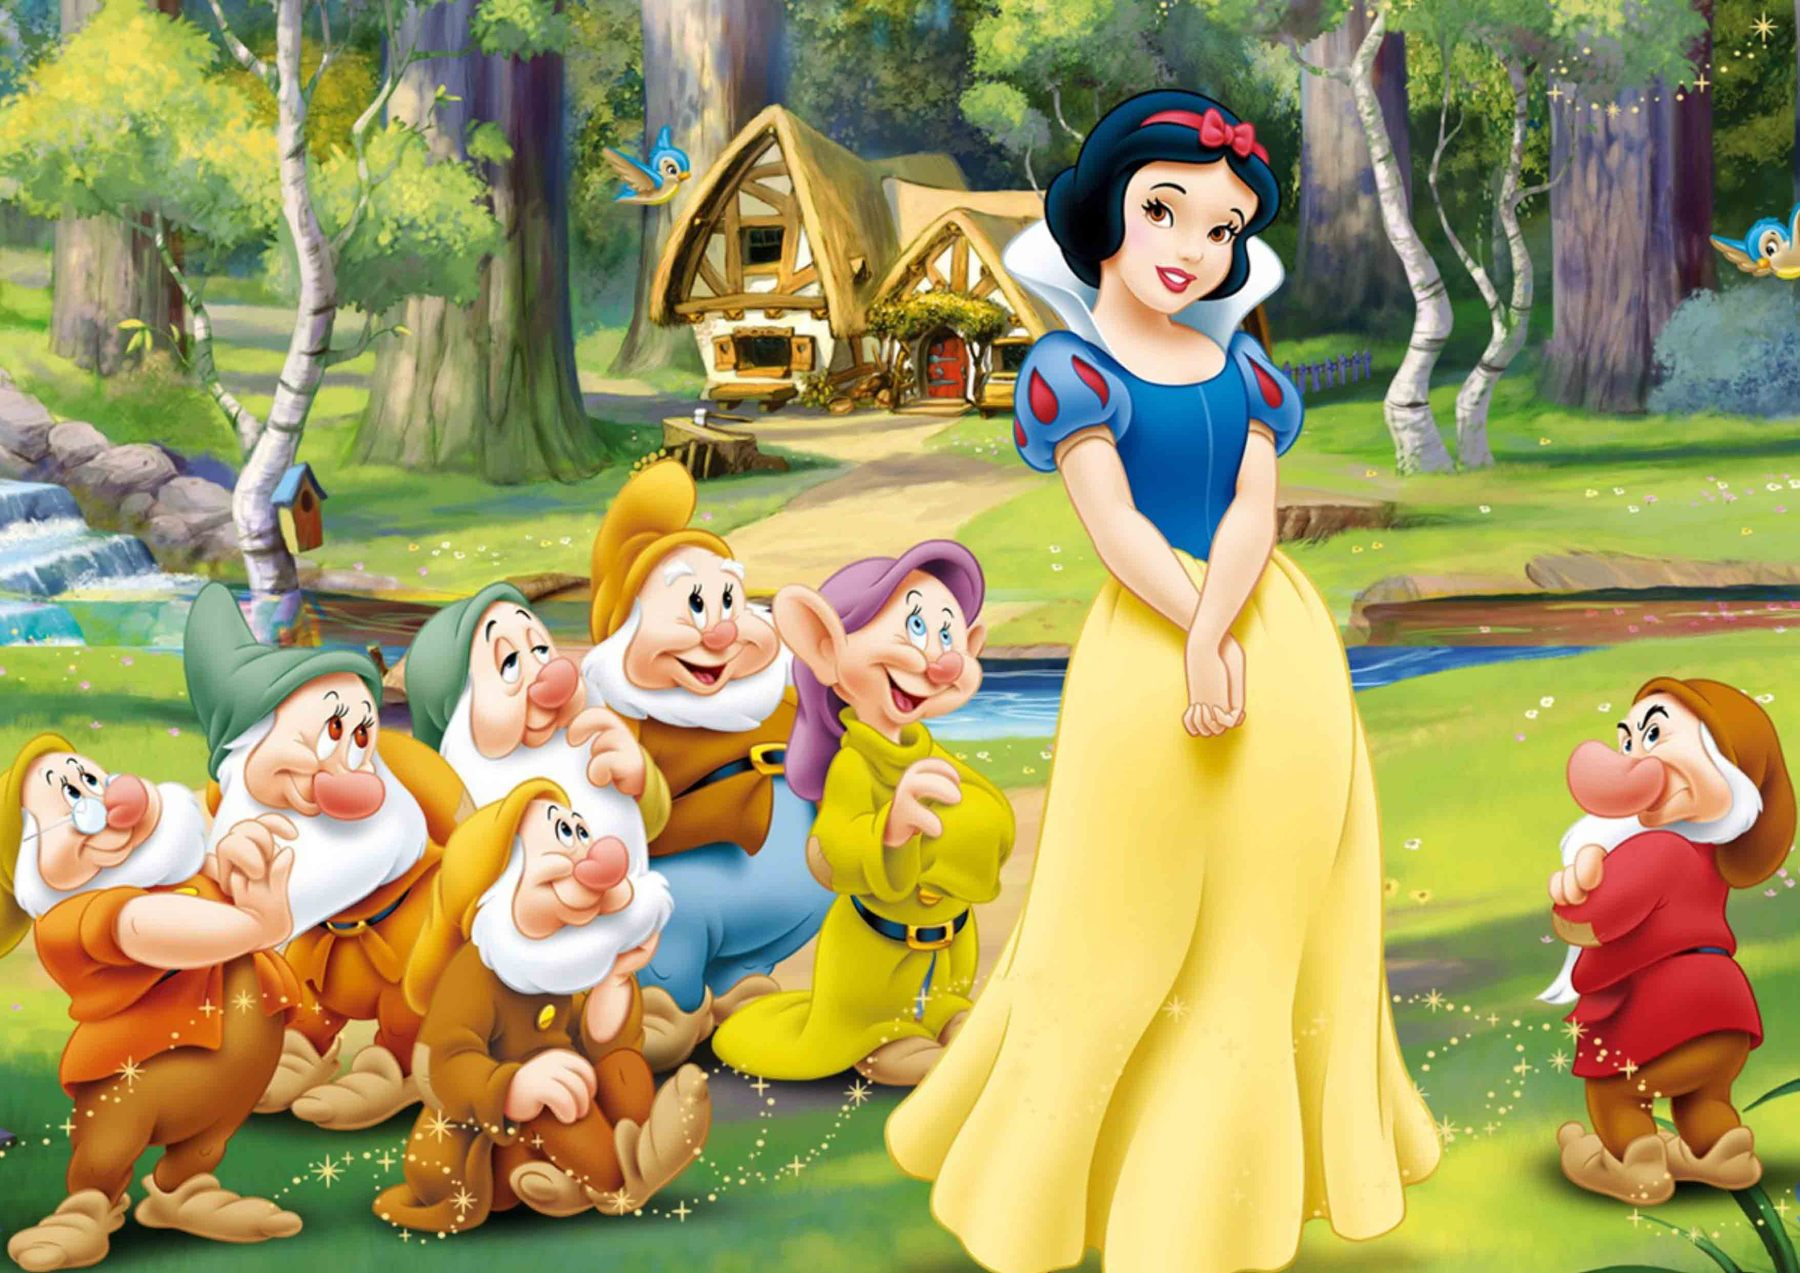 SNOW WHITE 7 DWARFS Disney Poster Picture Print Sizes A5 to A0 **FREE DELIVERY